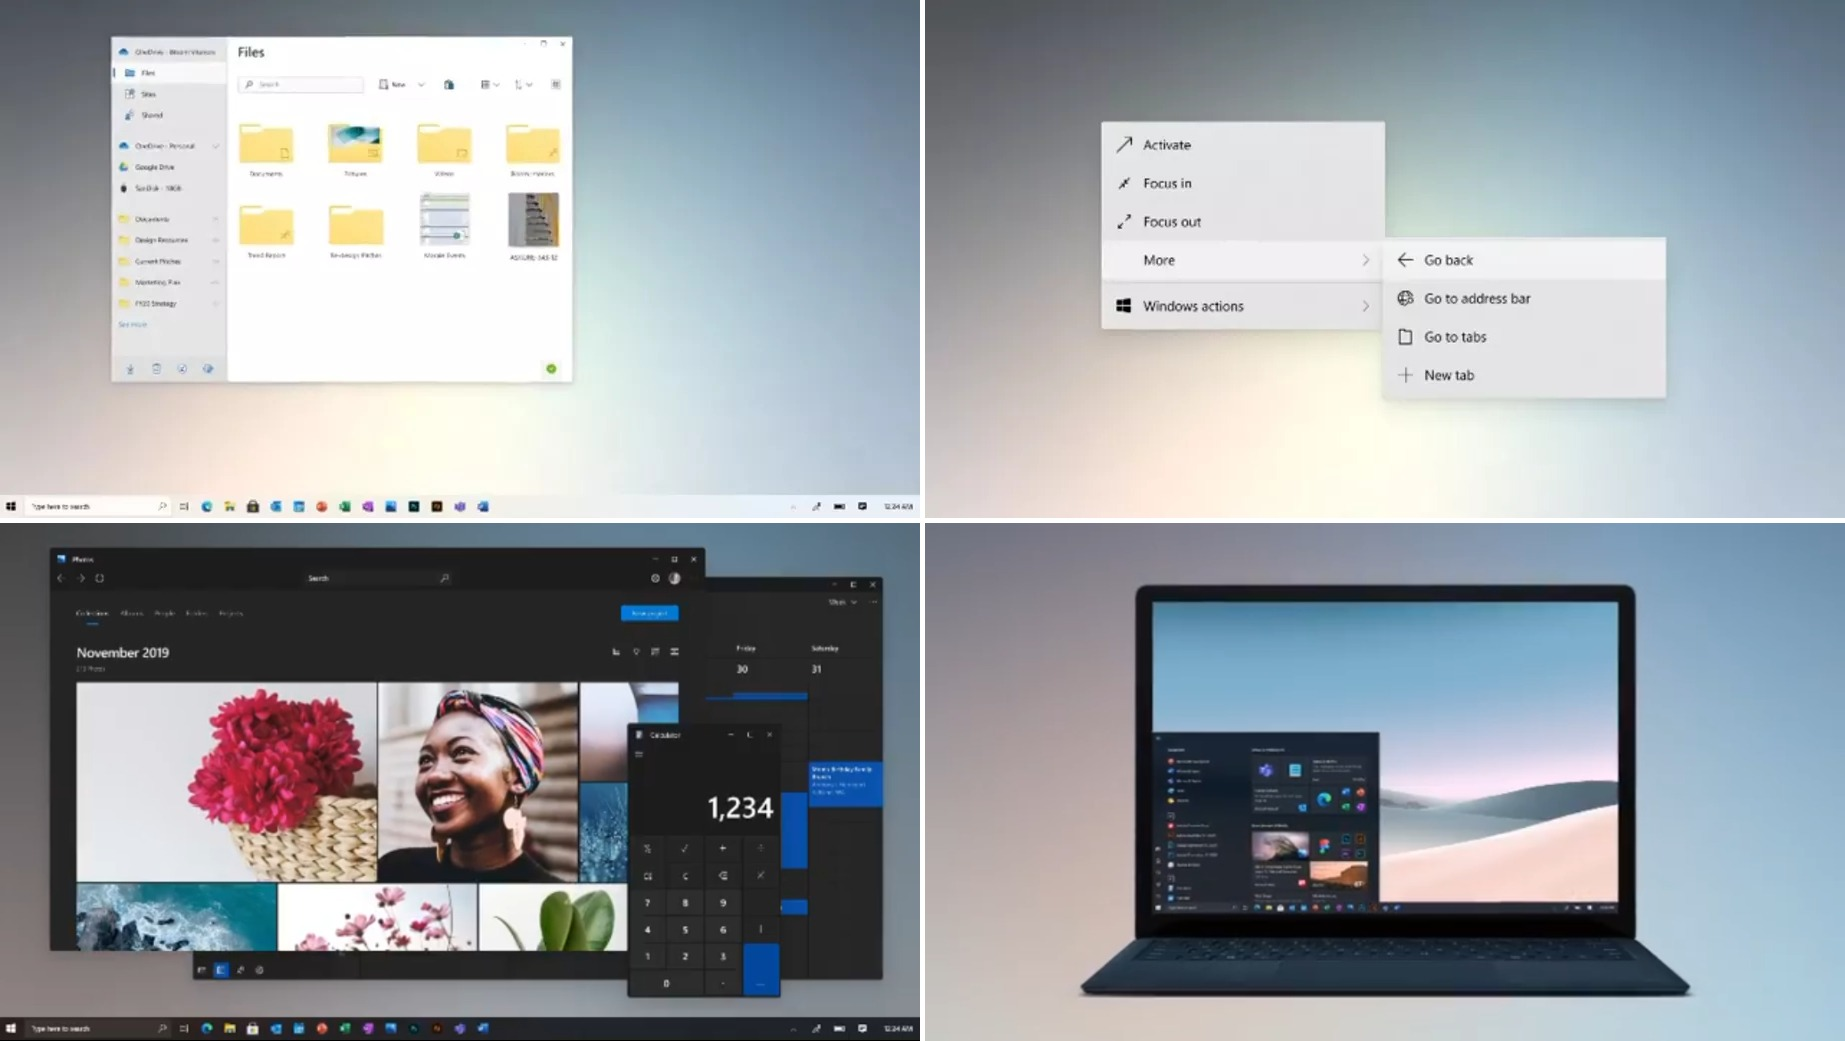 Microsoft product chief teases new Windows 10 UI in celebration of one billion users